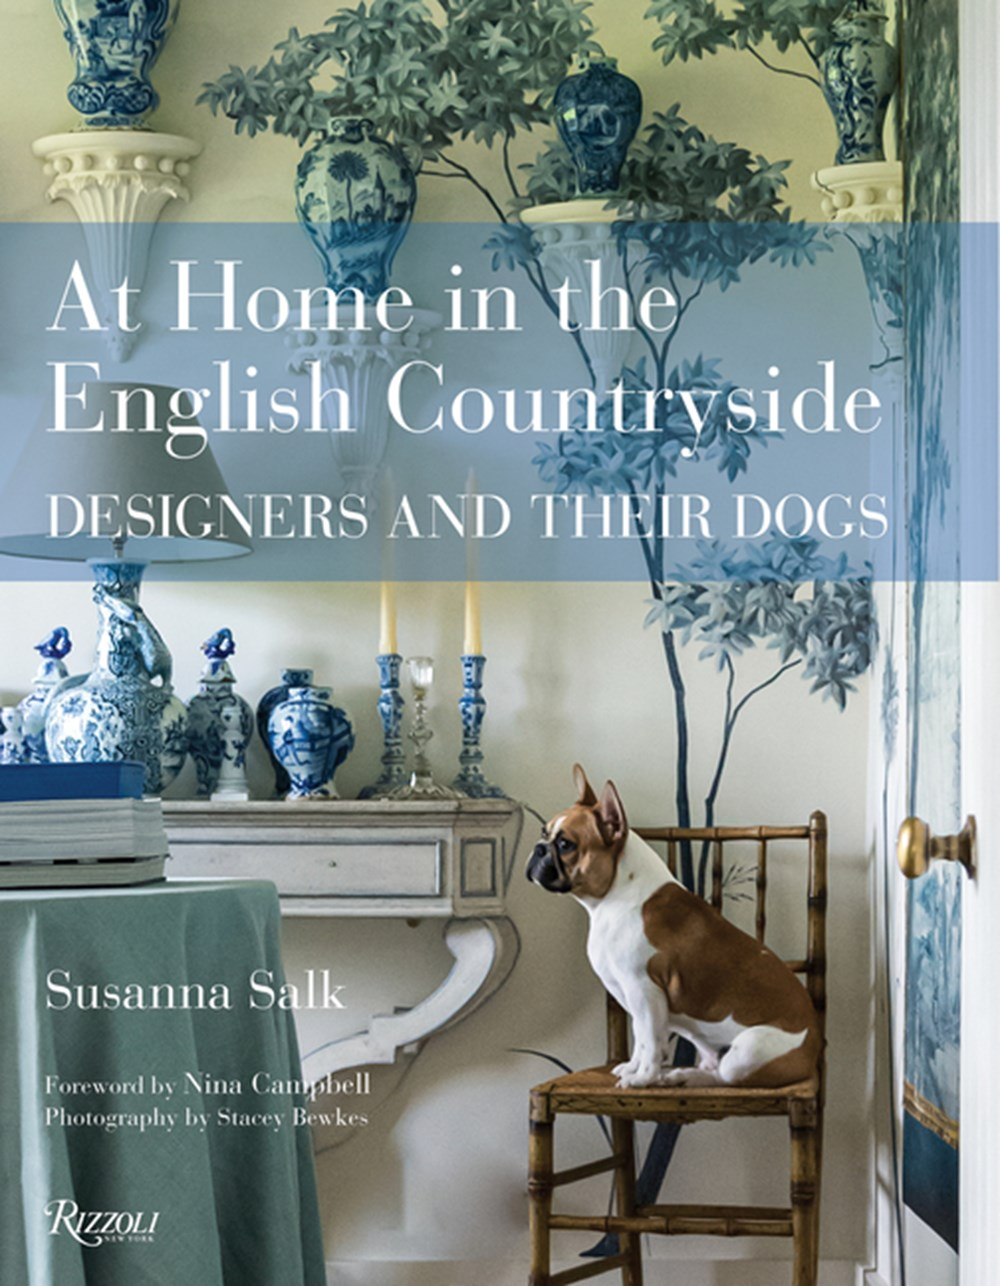 At Home in the English Countryside Designers and Their Dogs